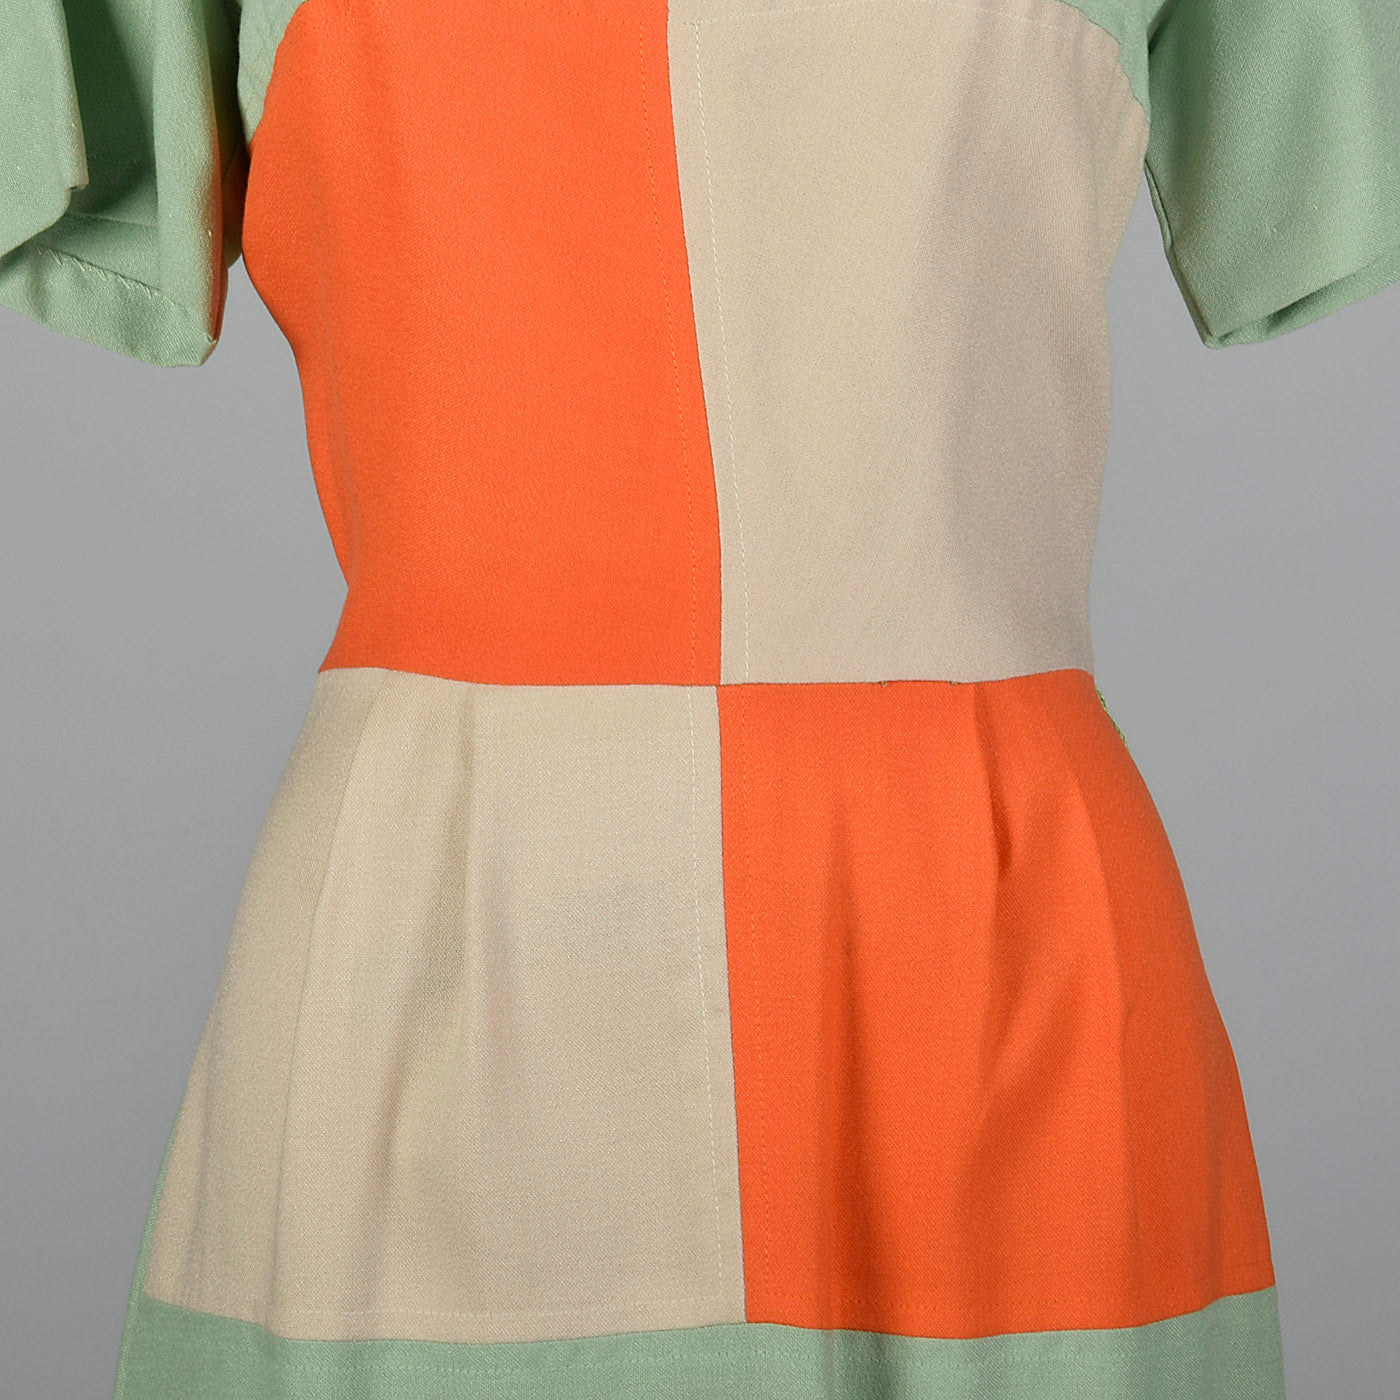 1950s Day Dress with Color Block Waist